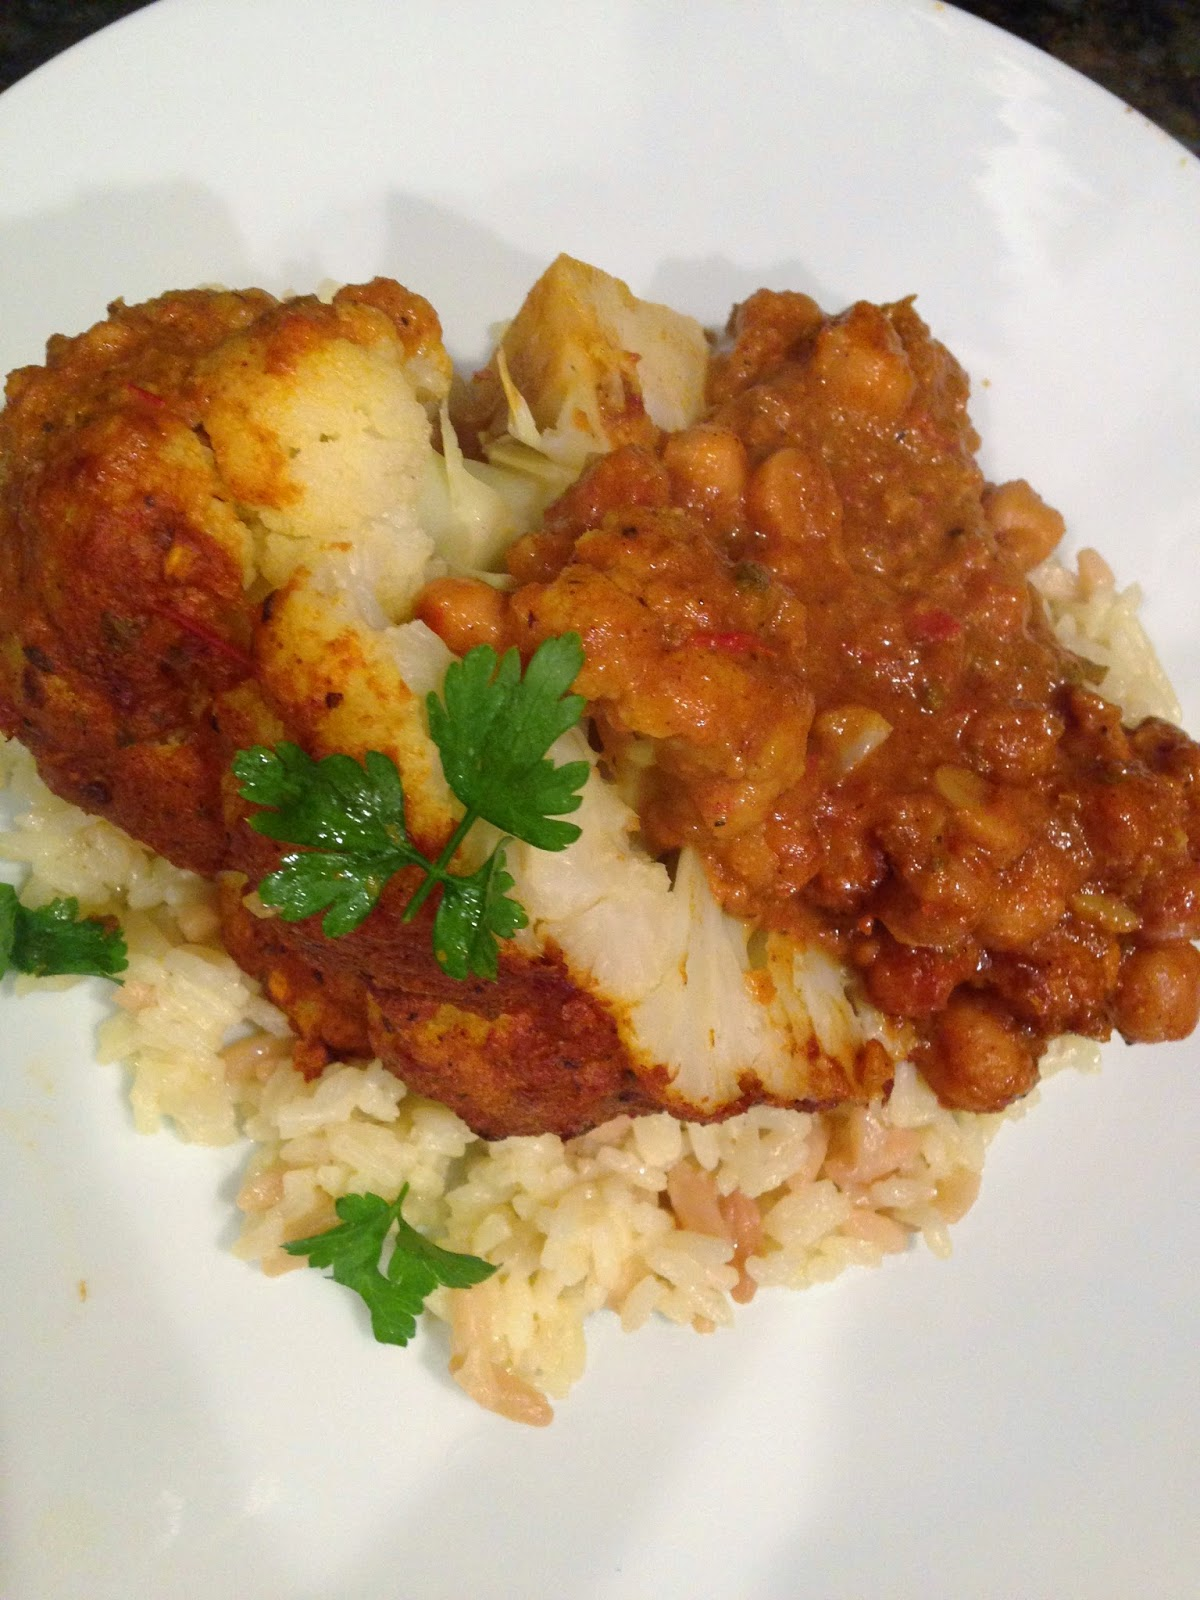 Cauliflower and Chickpeas with a Spiced, Creamy Tomato-Coconut Sauce ...